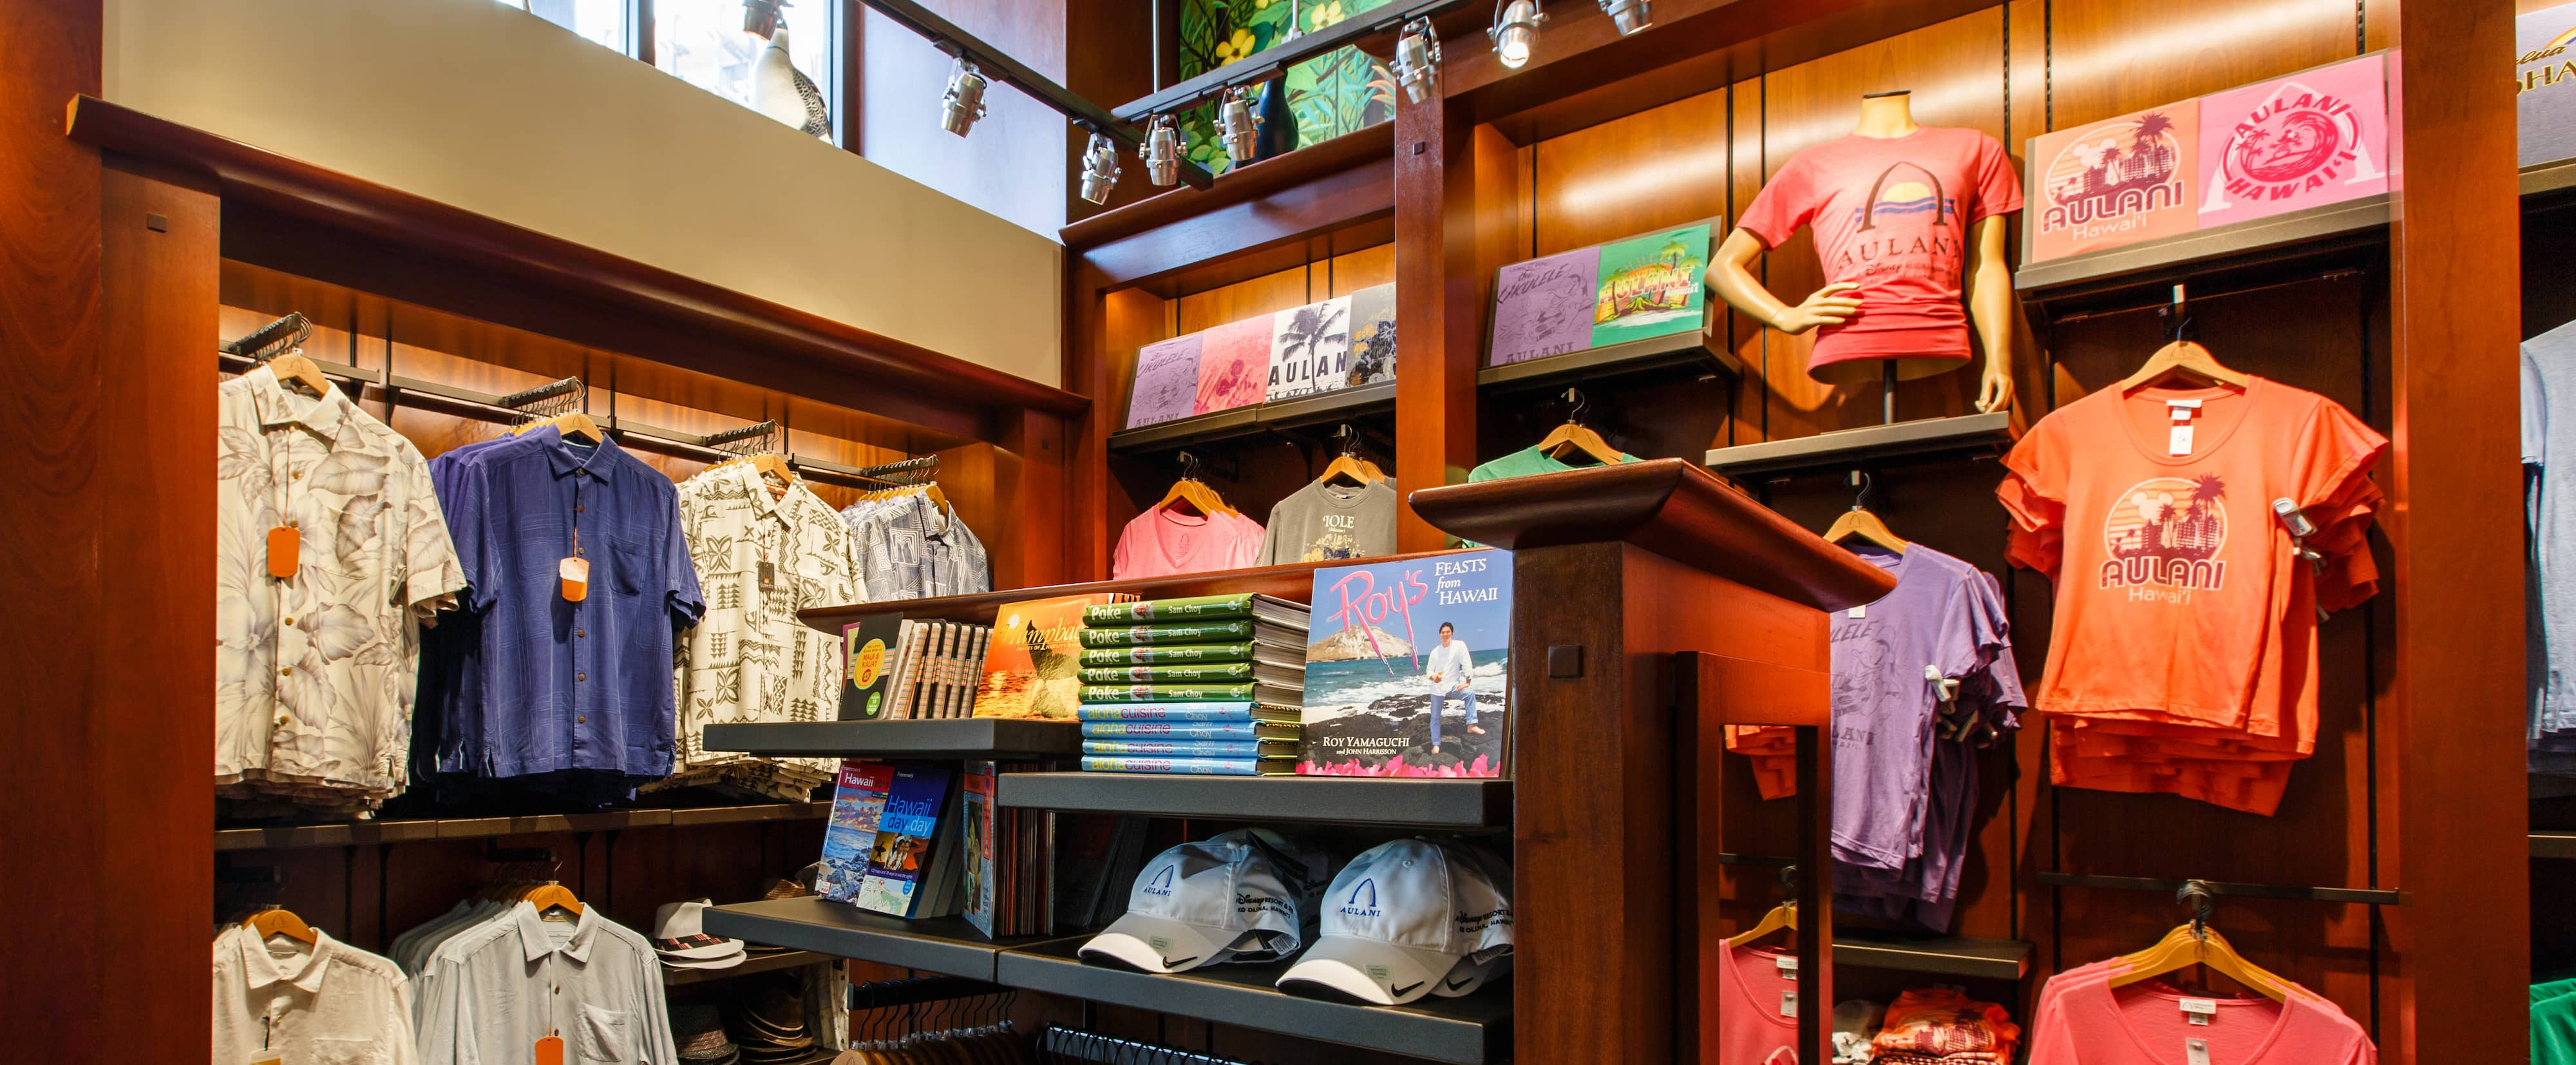 Aulani Resort caps and books about Hawaii on a shelf, with men's button-down shirts and tees hanging nearby